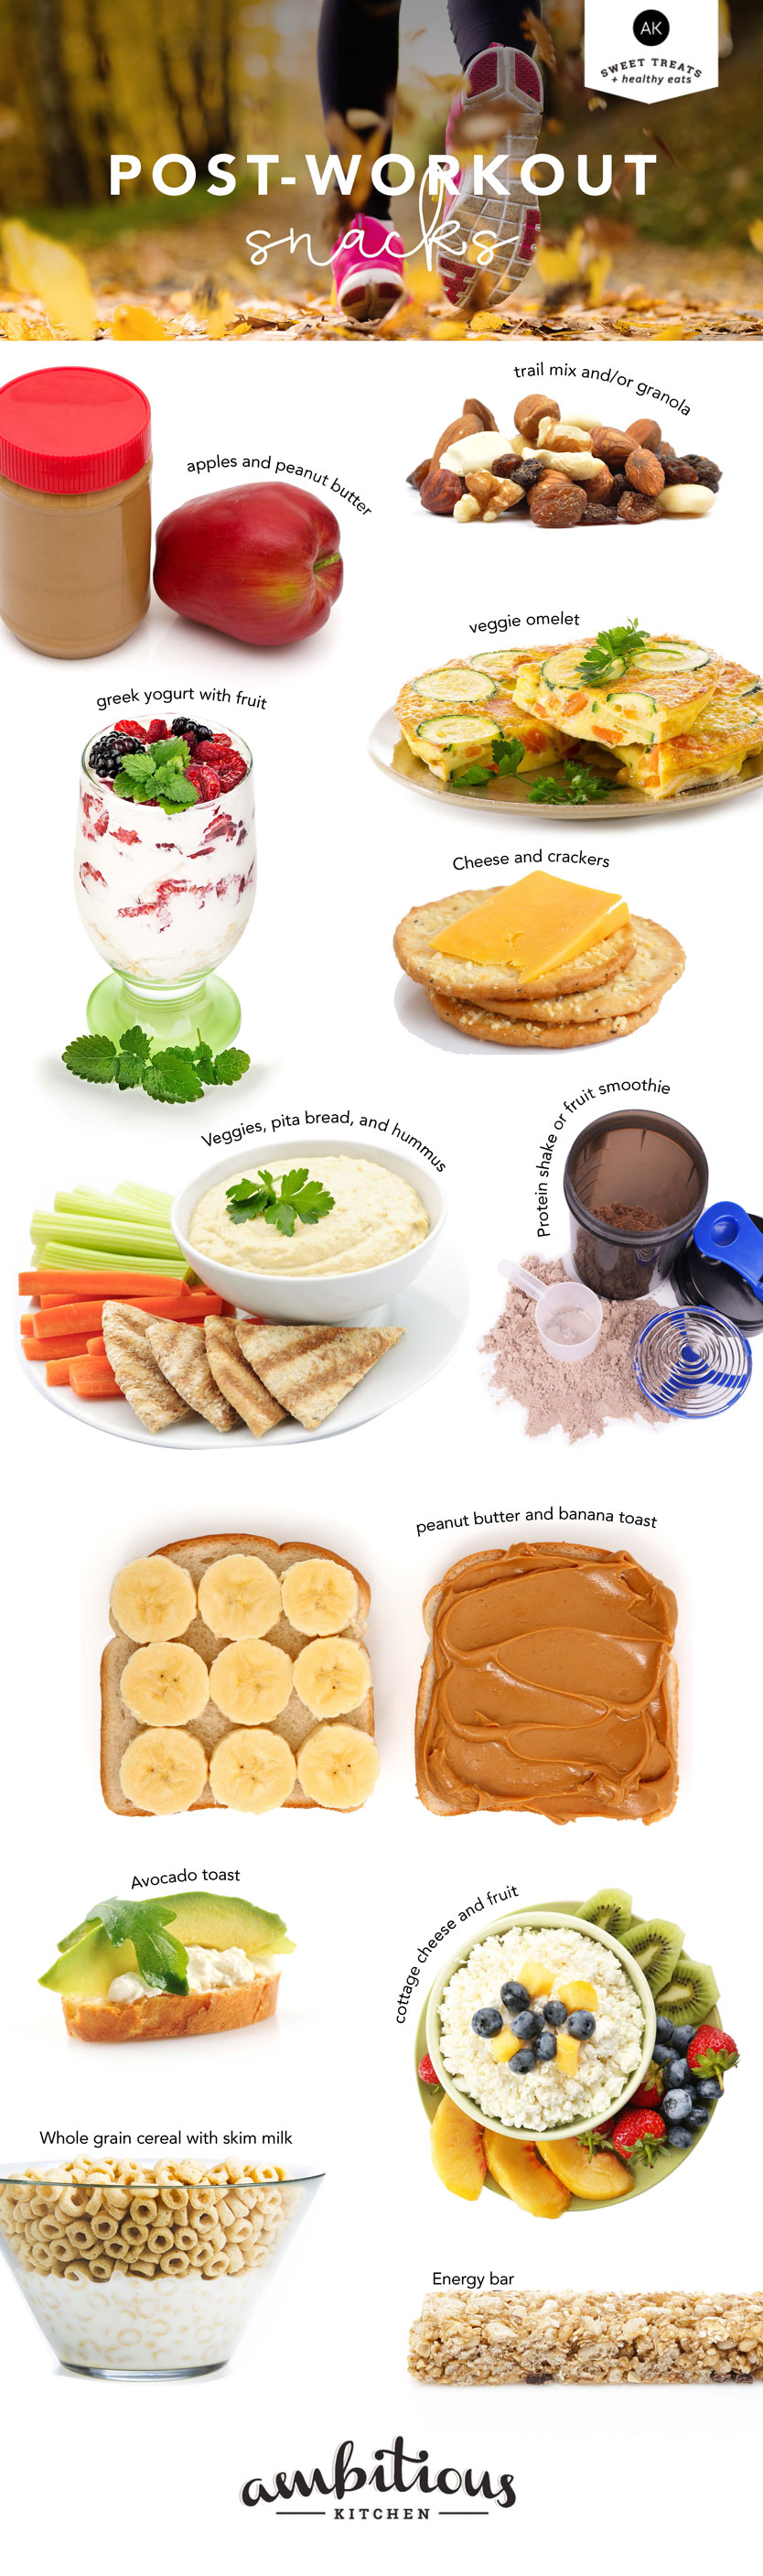 Best Post-Workout Snack Ideas For A Quick Energy Boost Infographic